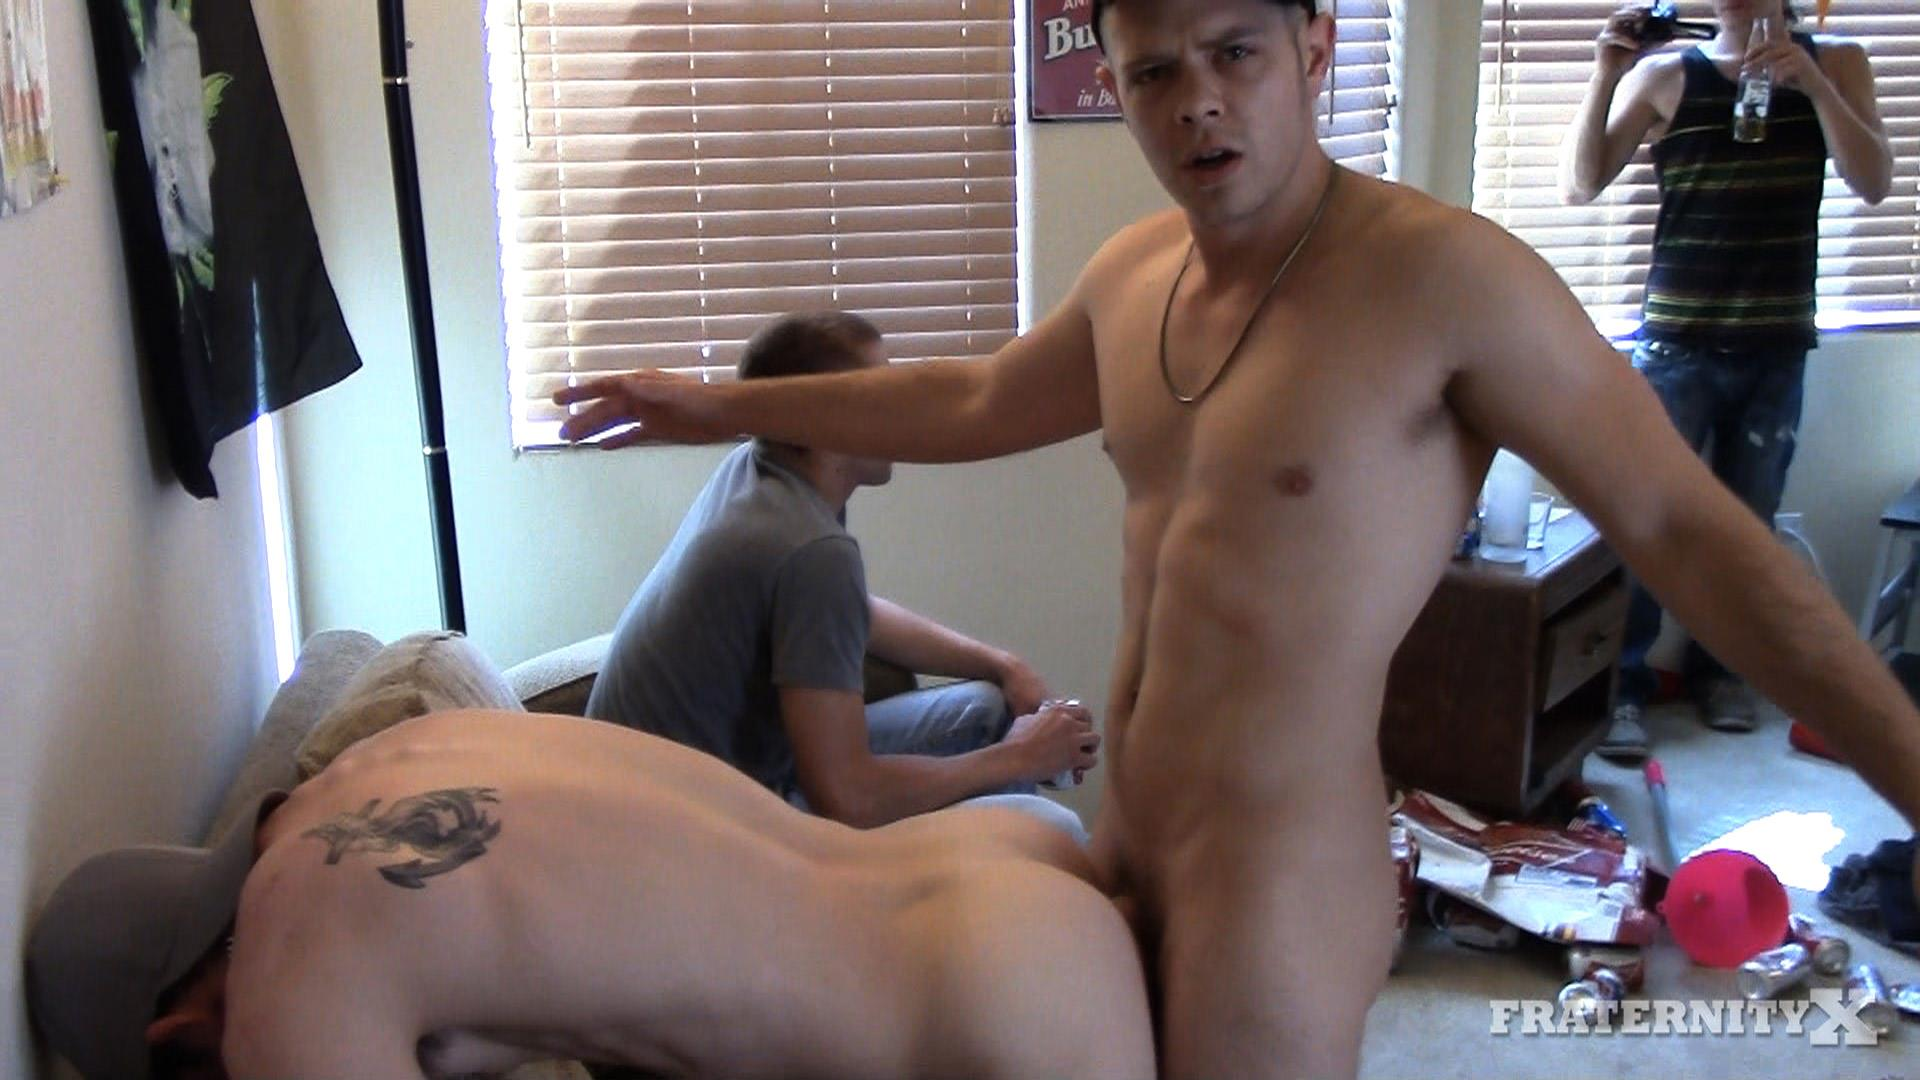 Fraternity-X-Straight-Frat-Guys-With-Big-Cocks-Barebacking-A-Tight-Ass-Amateur-Gay-Porn-01.jpg